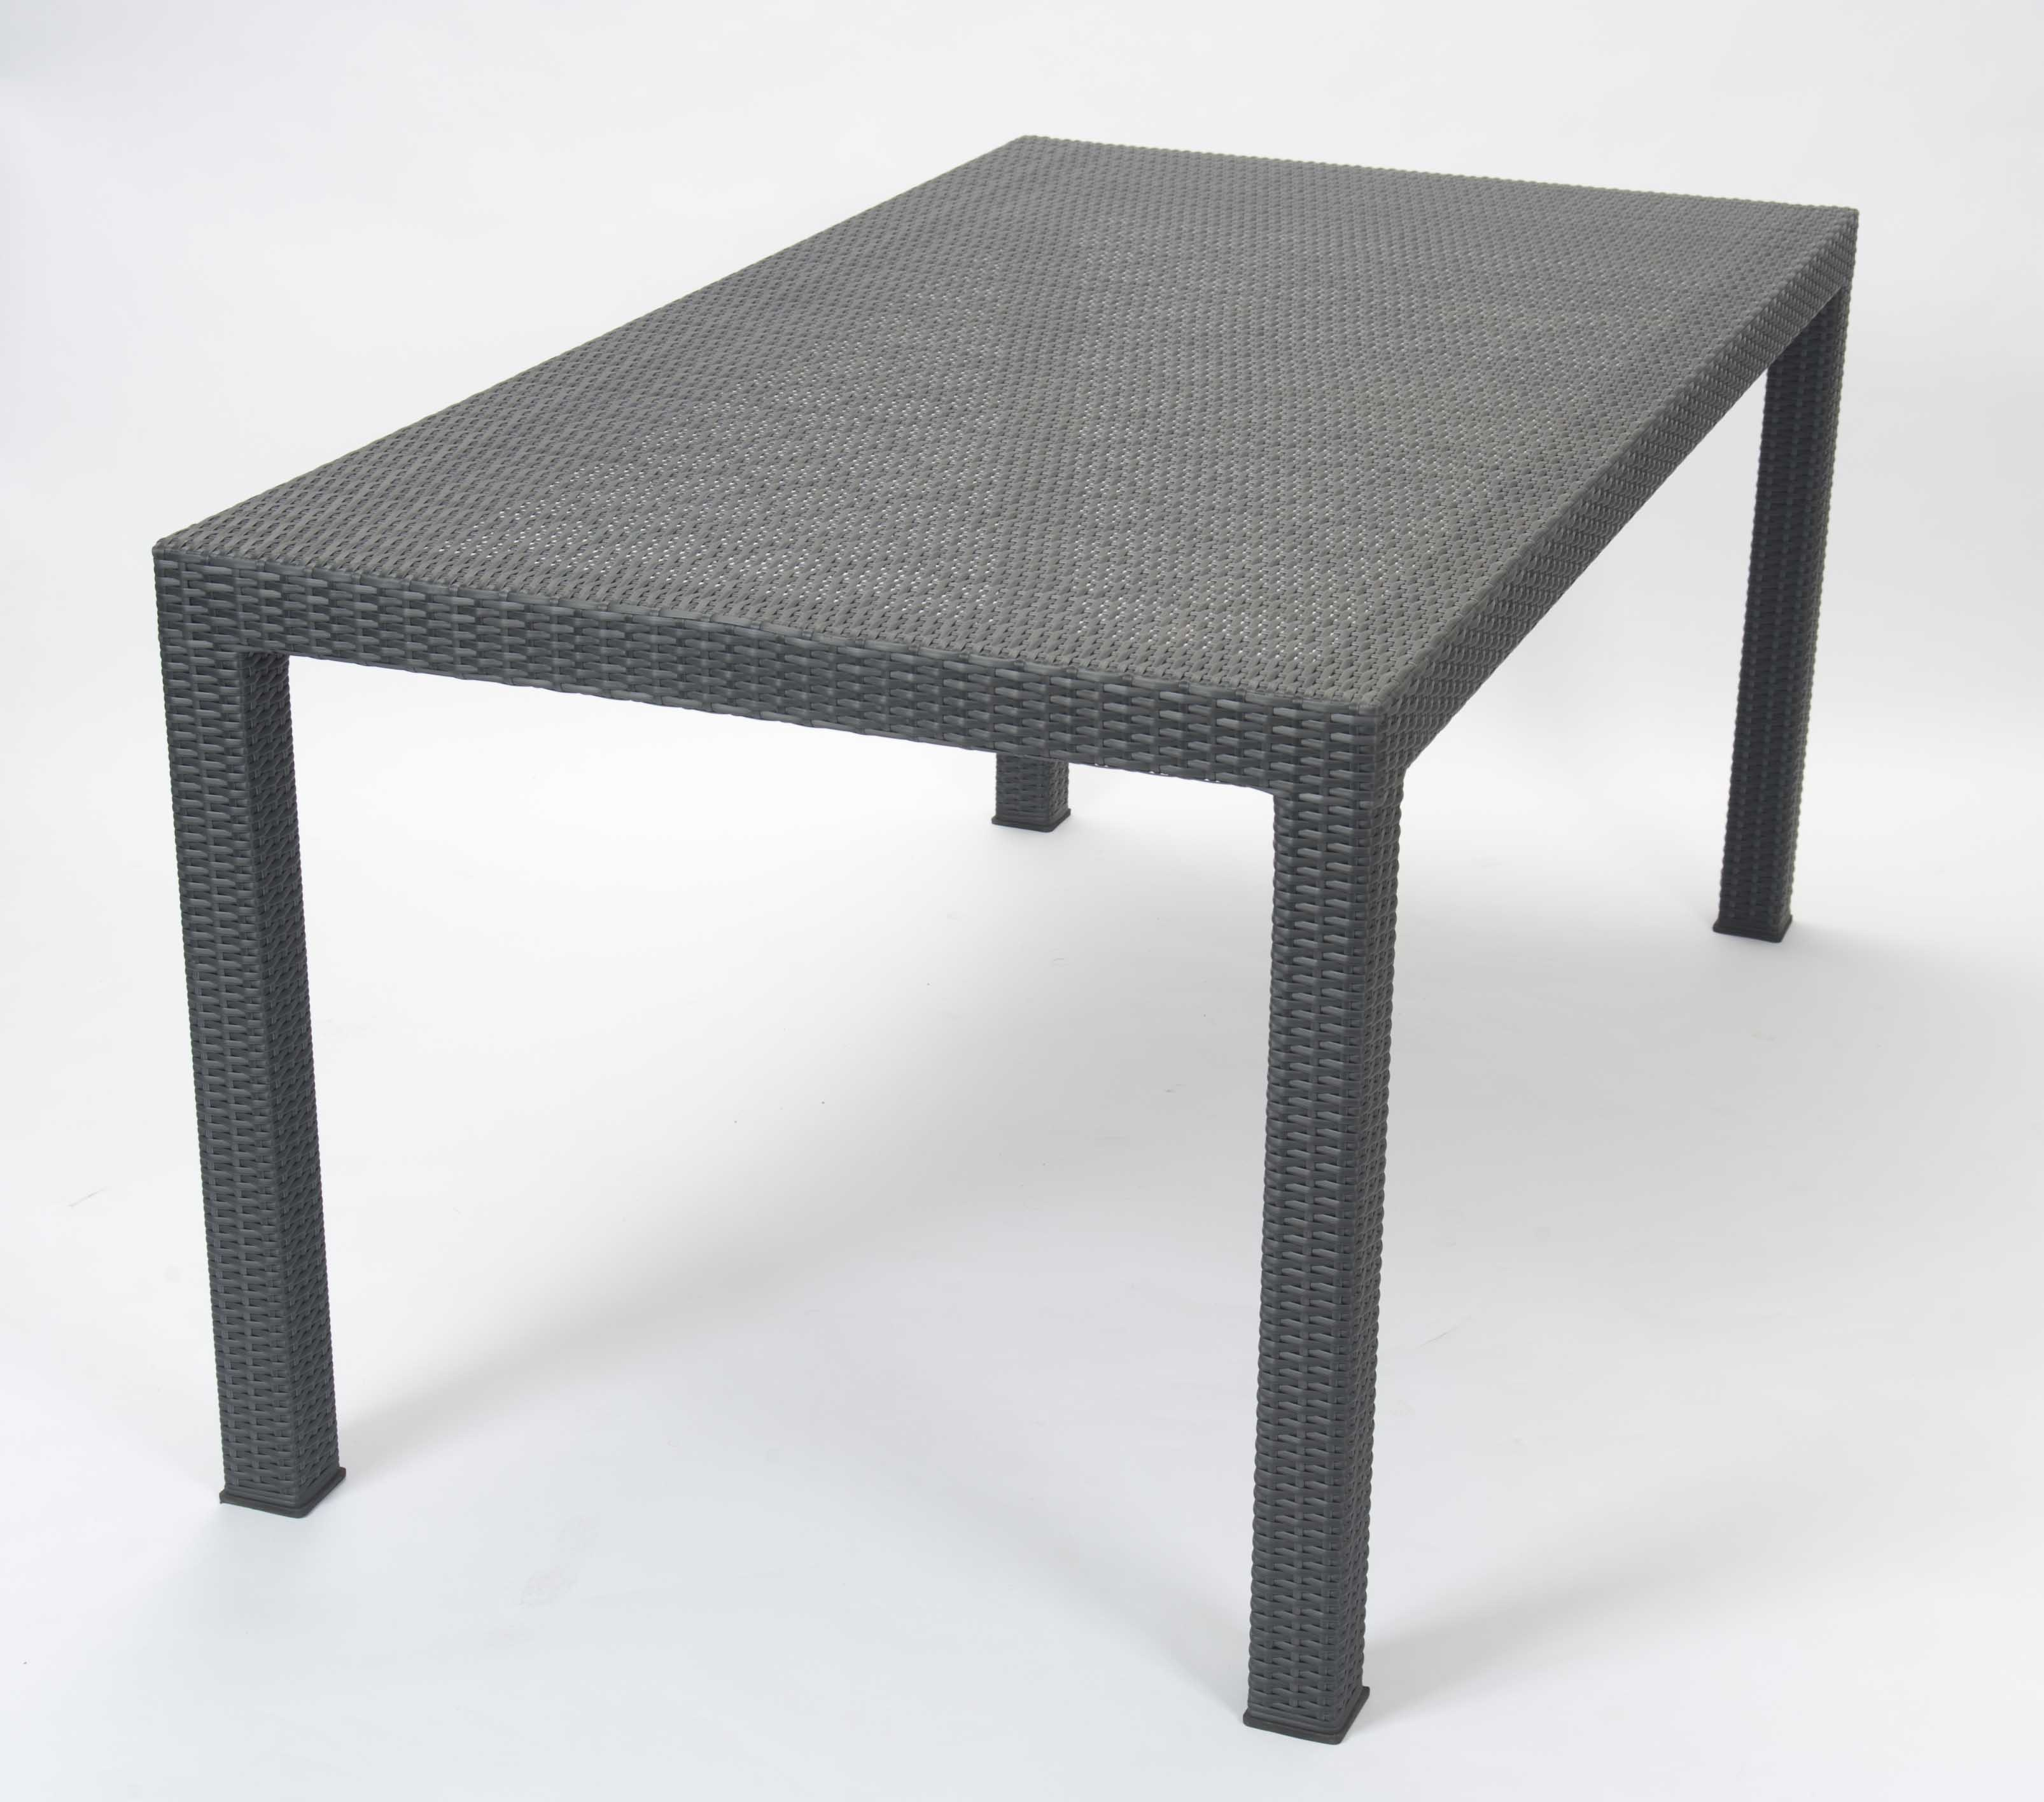 Nimes Outdoor Dining Table Slate Pr Home